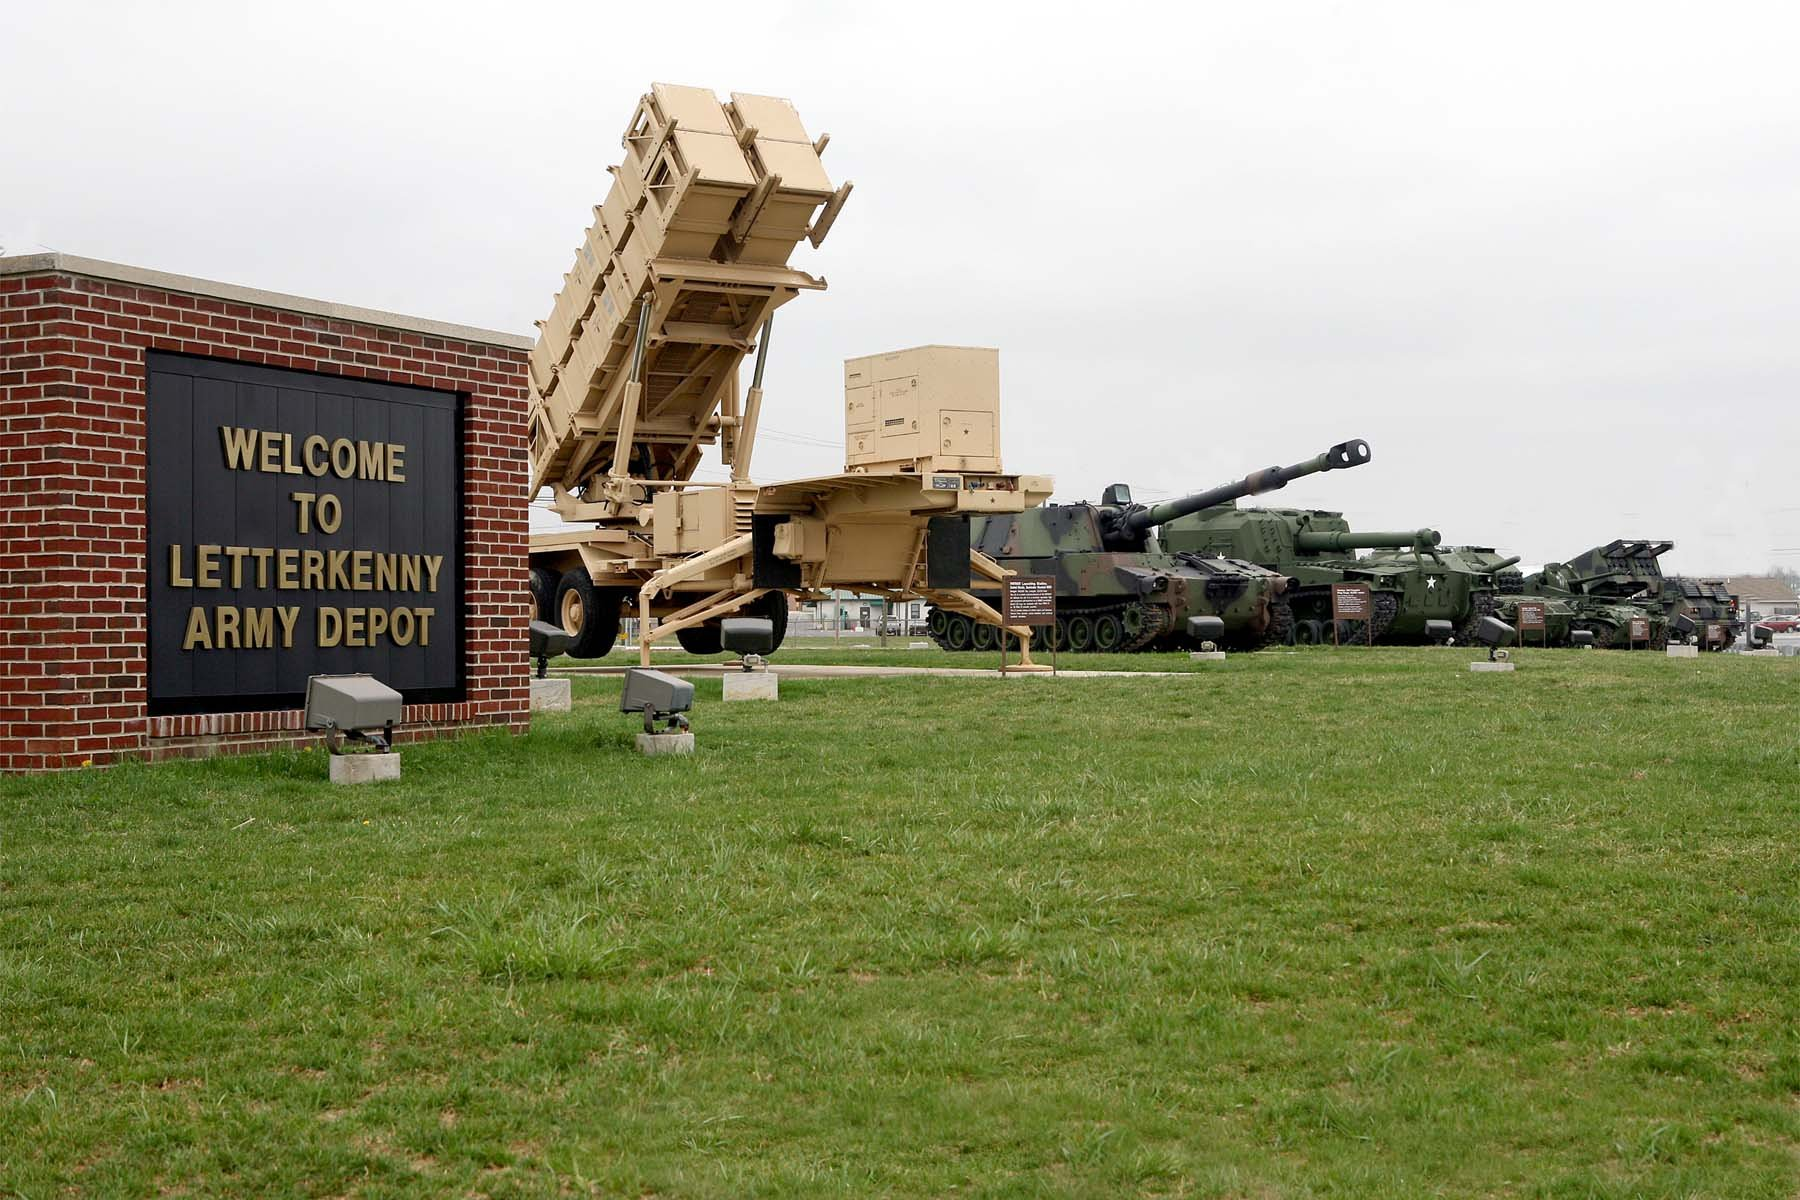 Three people were airlifted from the Army depot Thursday. (Source: Letterkenny Army Depot)